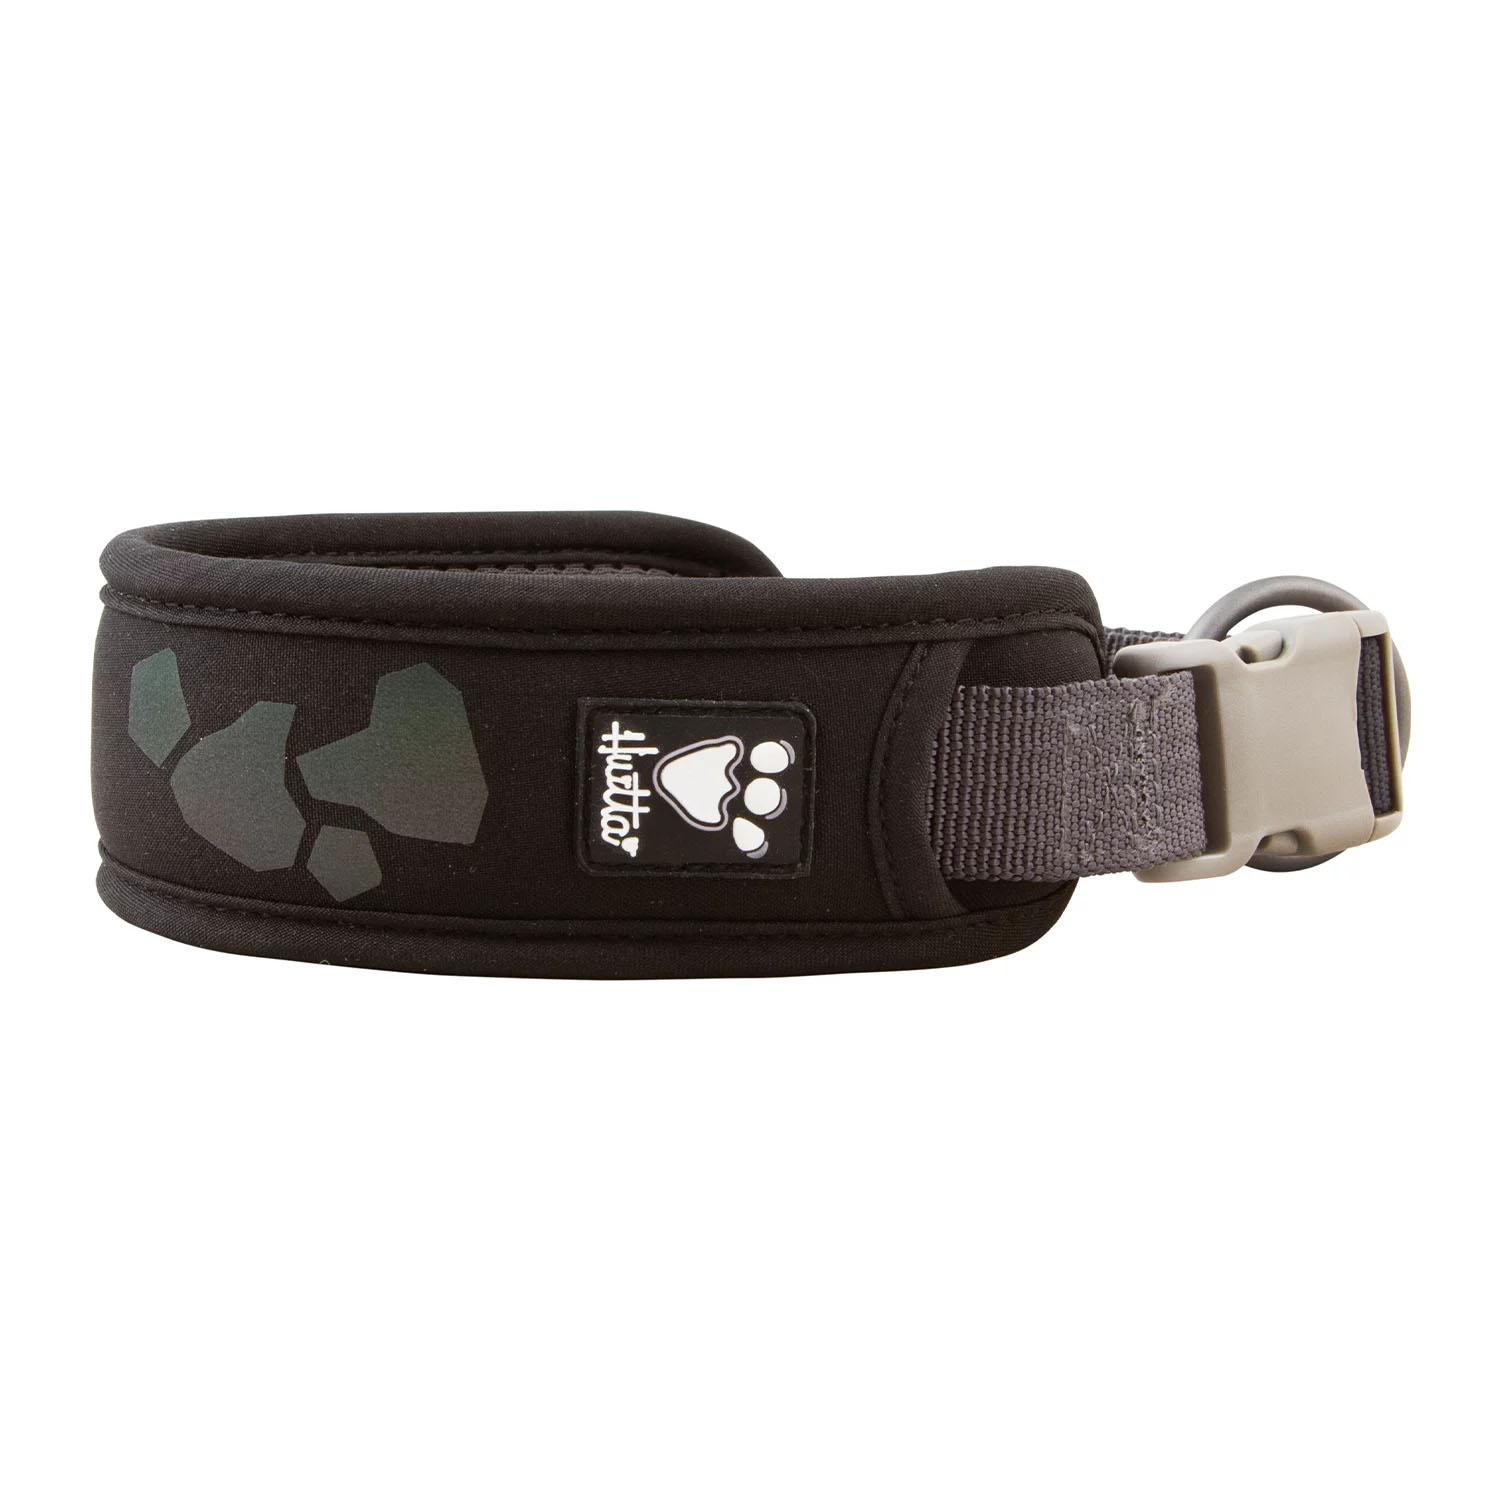 Hurtta Weekend Warrior Dog Collar - Raven